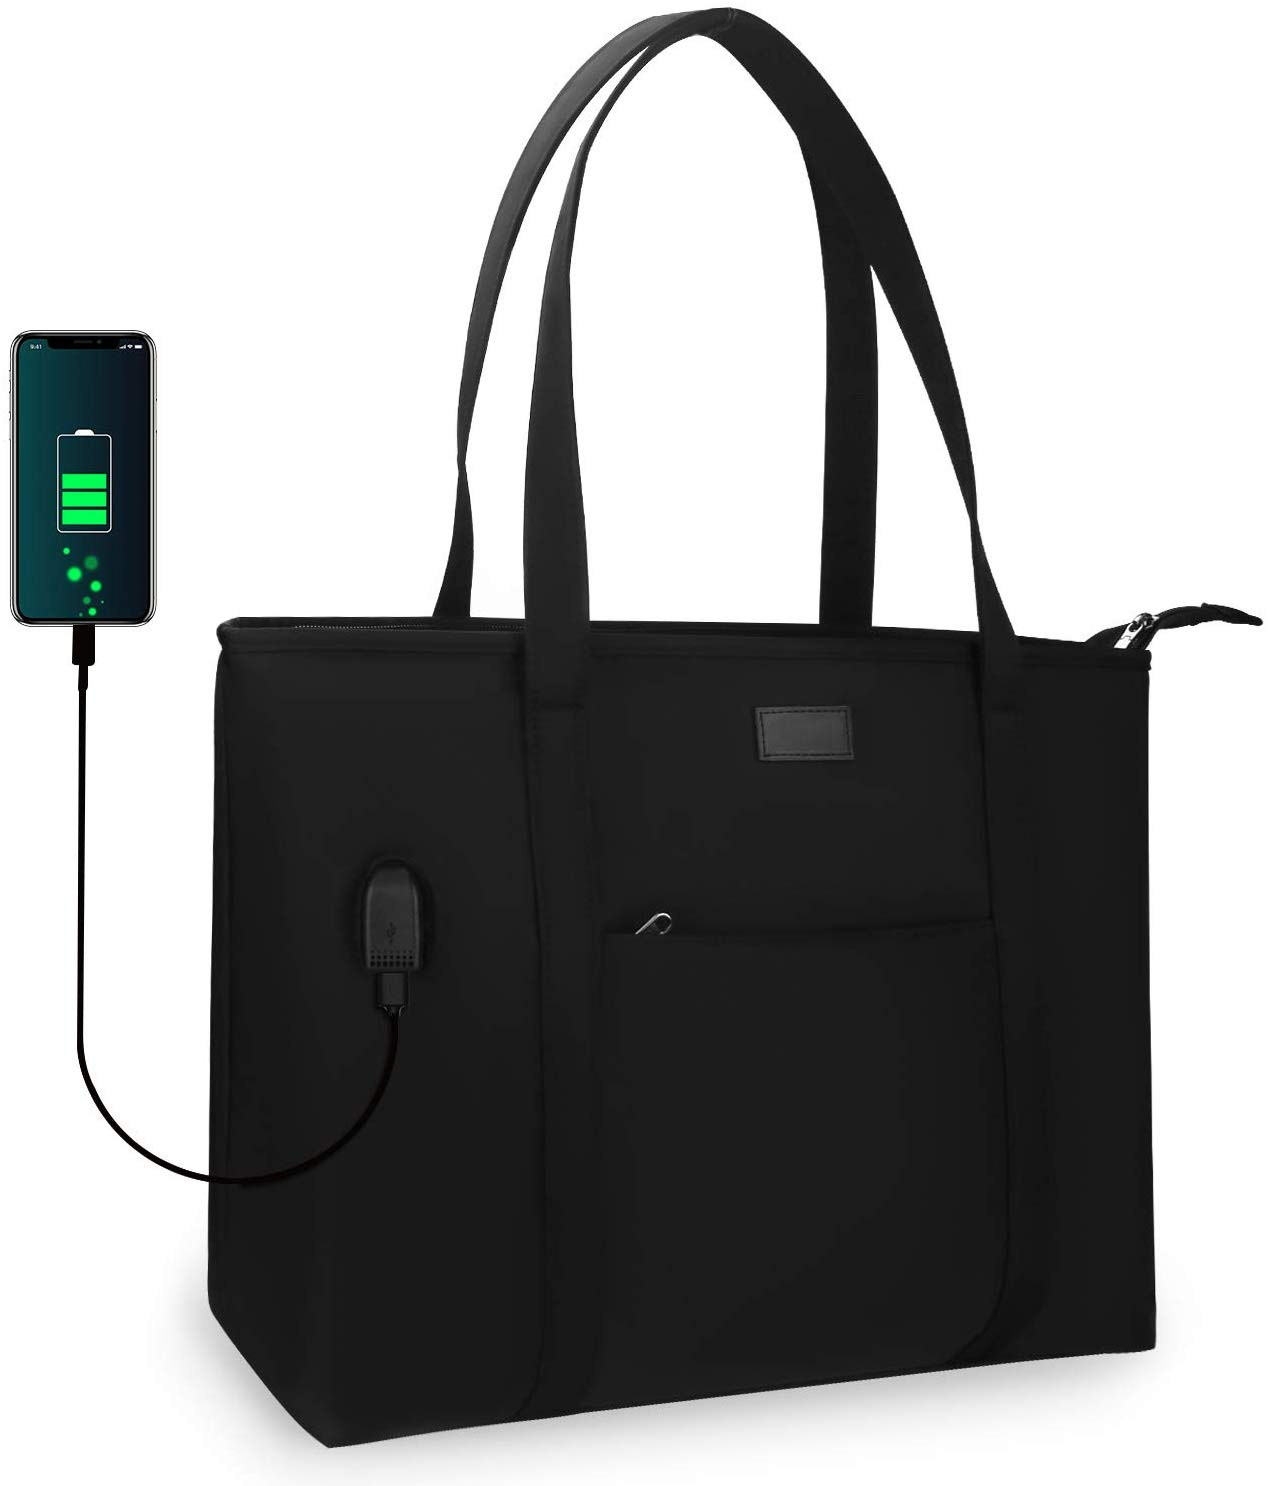 Laptop Tote Bag For Men and Women